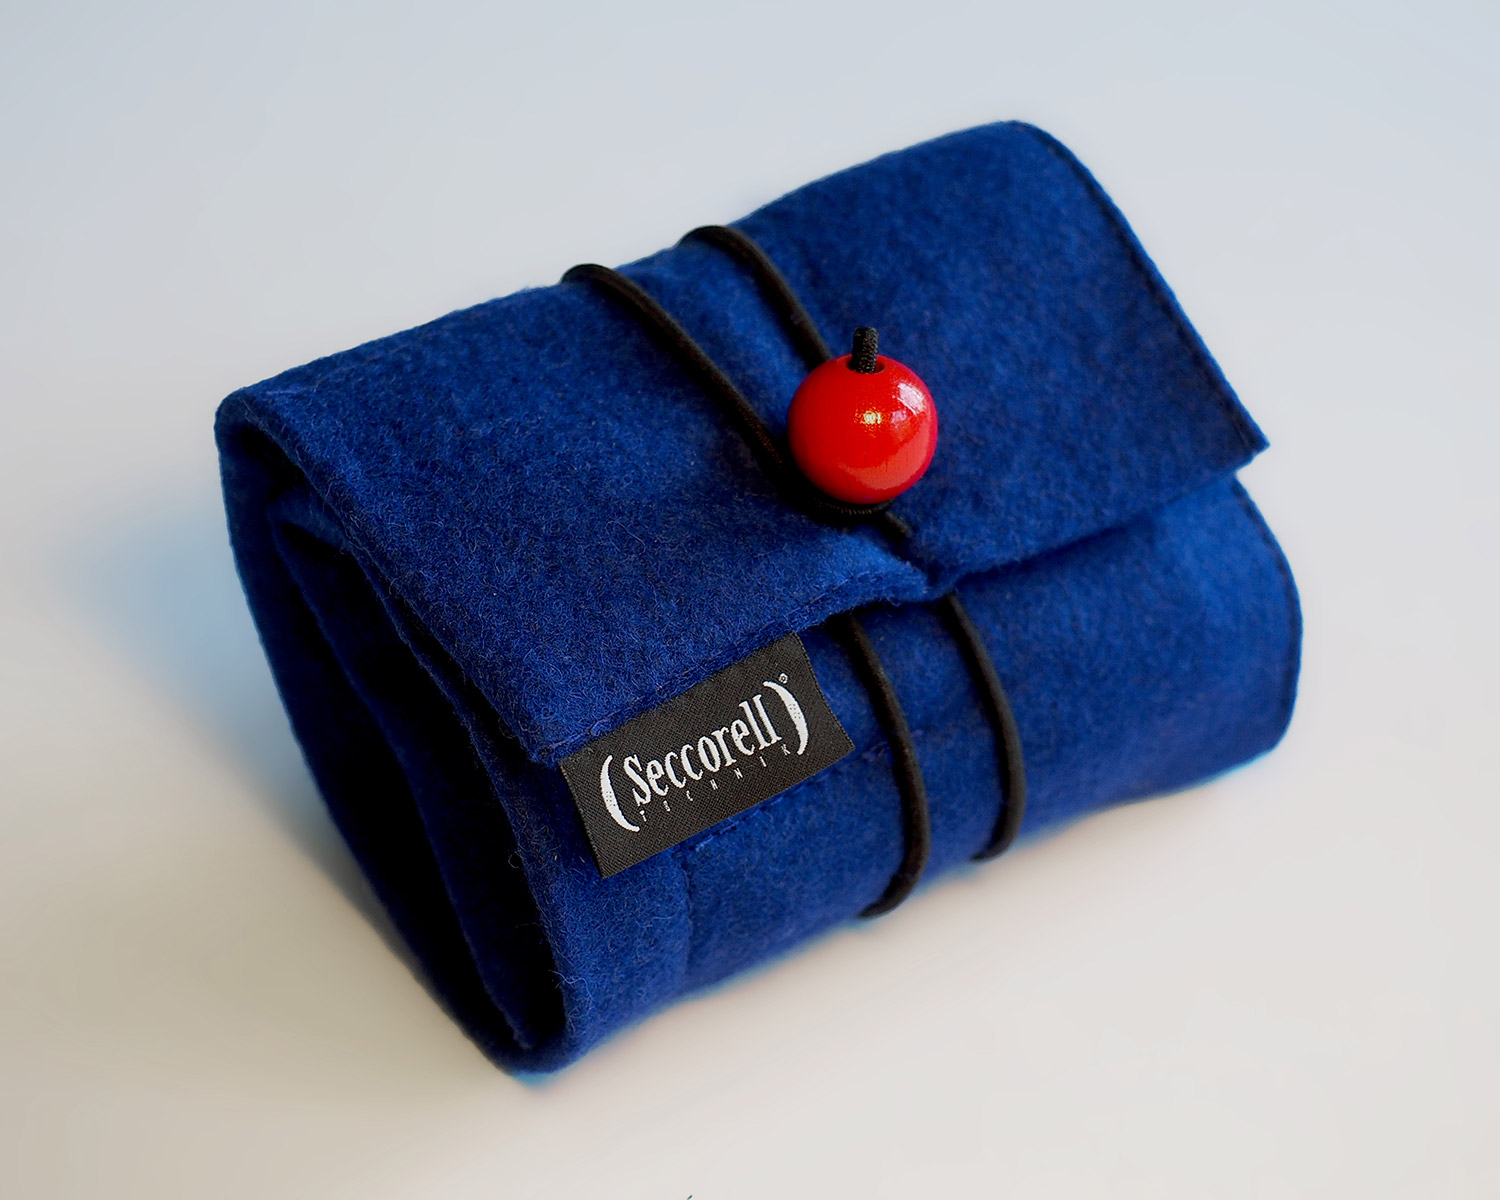 Seccorell Felt Roll-up Pouch filled with Smudge Paints